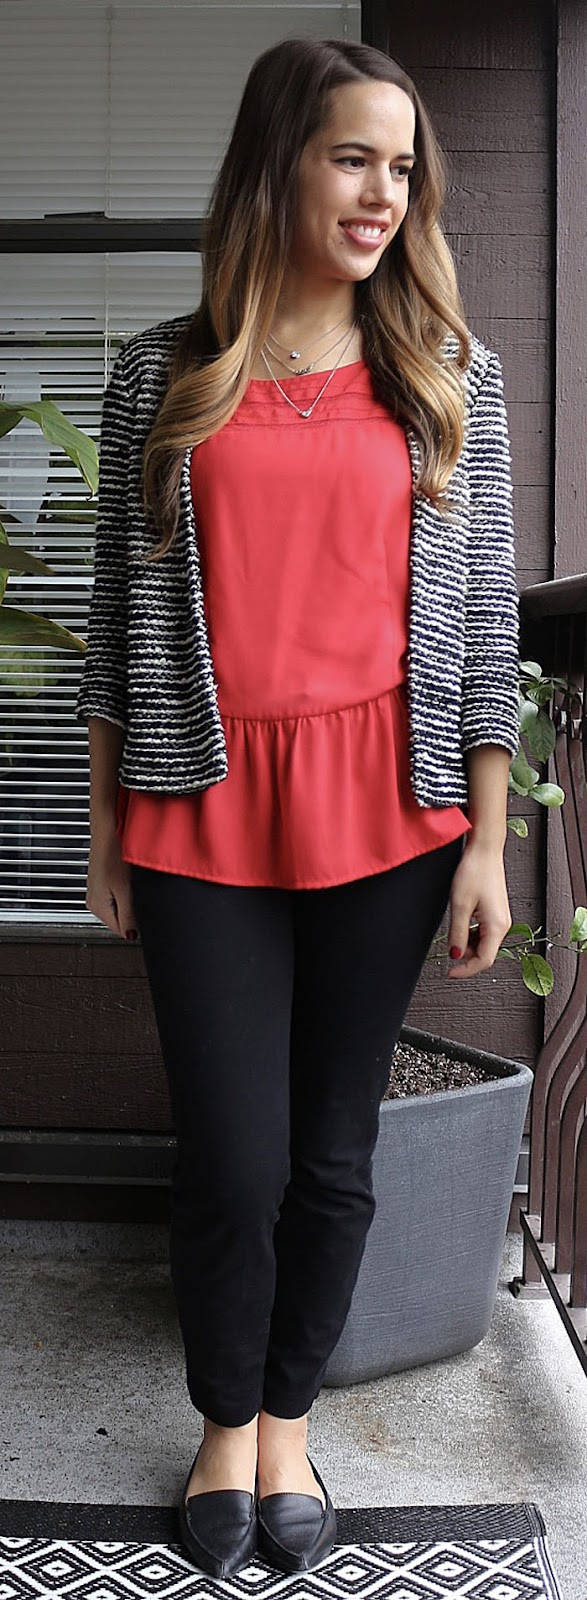 Jules in Flats - Smart Set Peplum top, H&M Striped jacket, Old Navy Pixie Pants